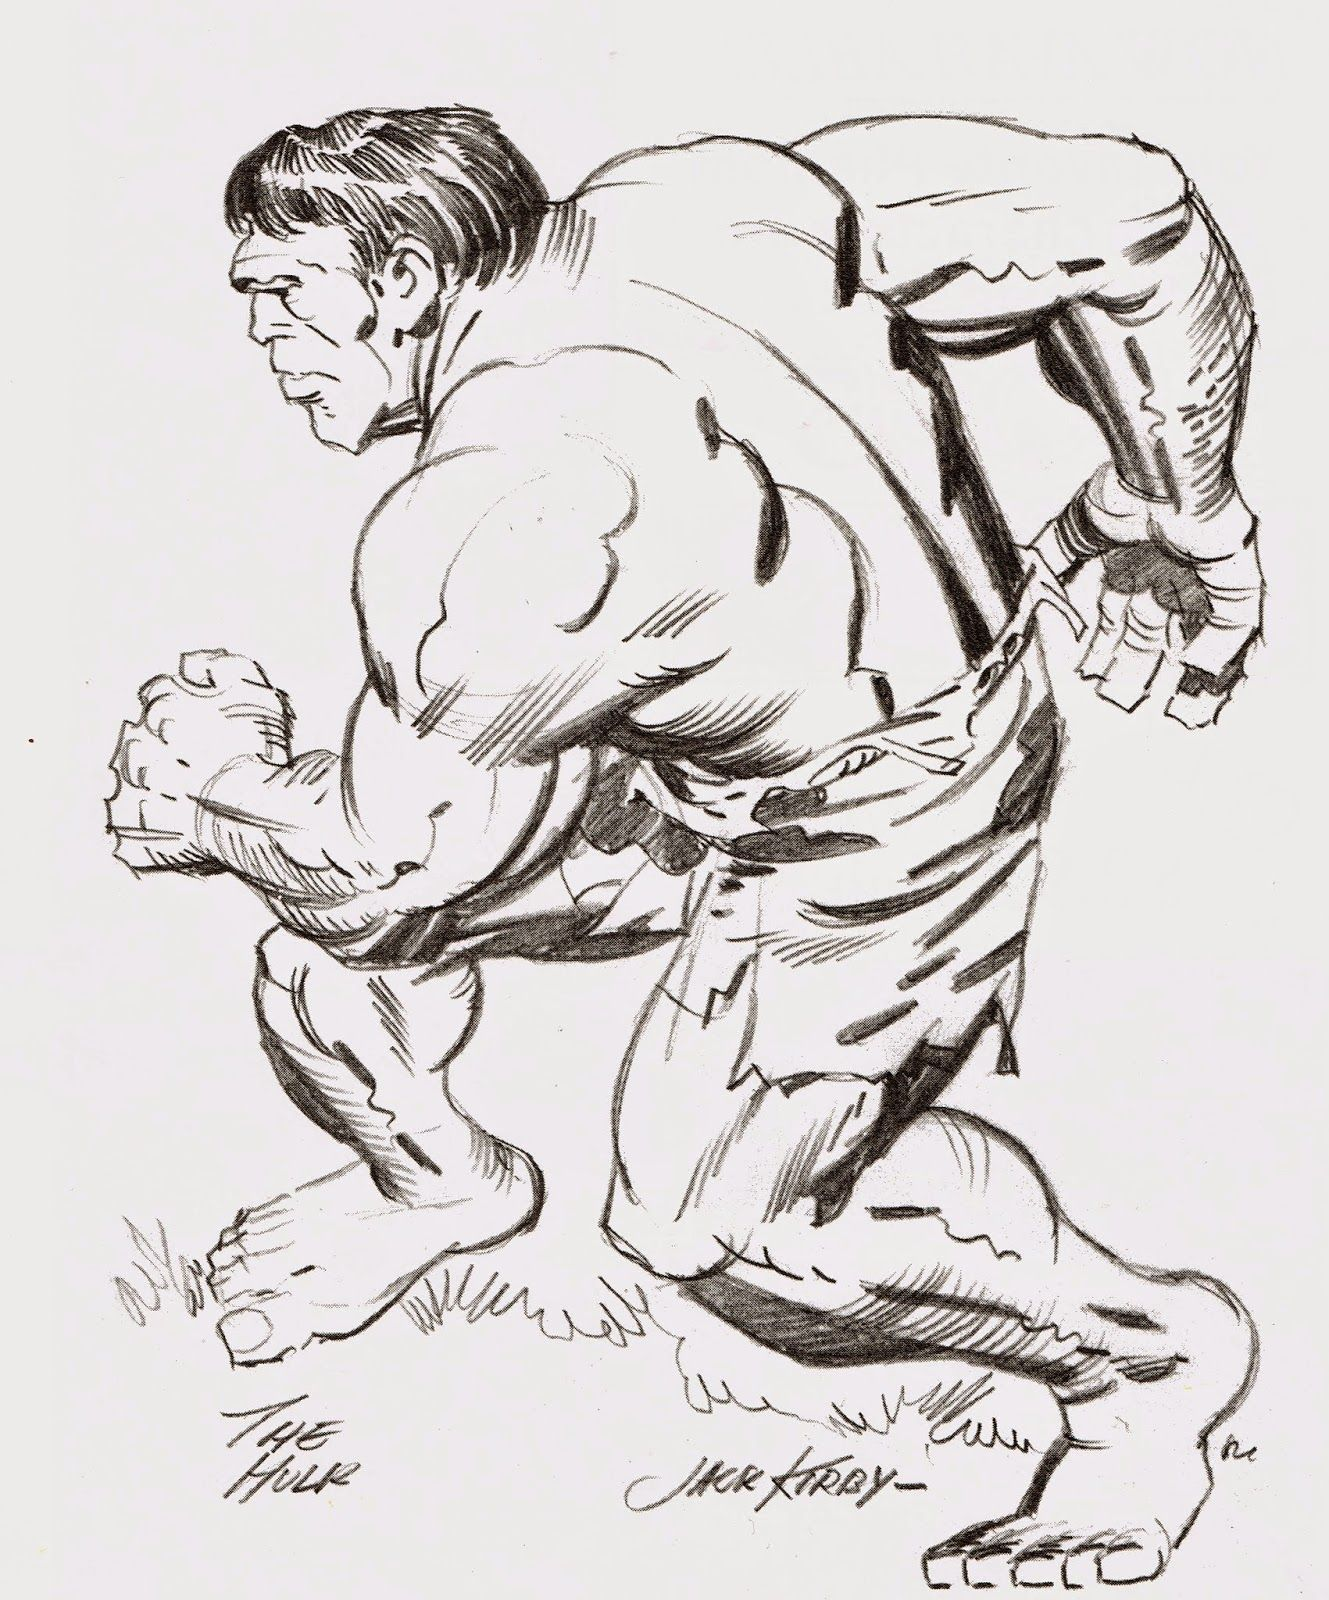 Cap'n's Comics: The Hulk by Jack Kirby Cap'n's Comics: The Hulk by Jack Kirby